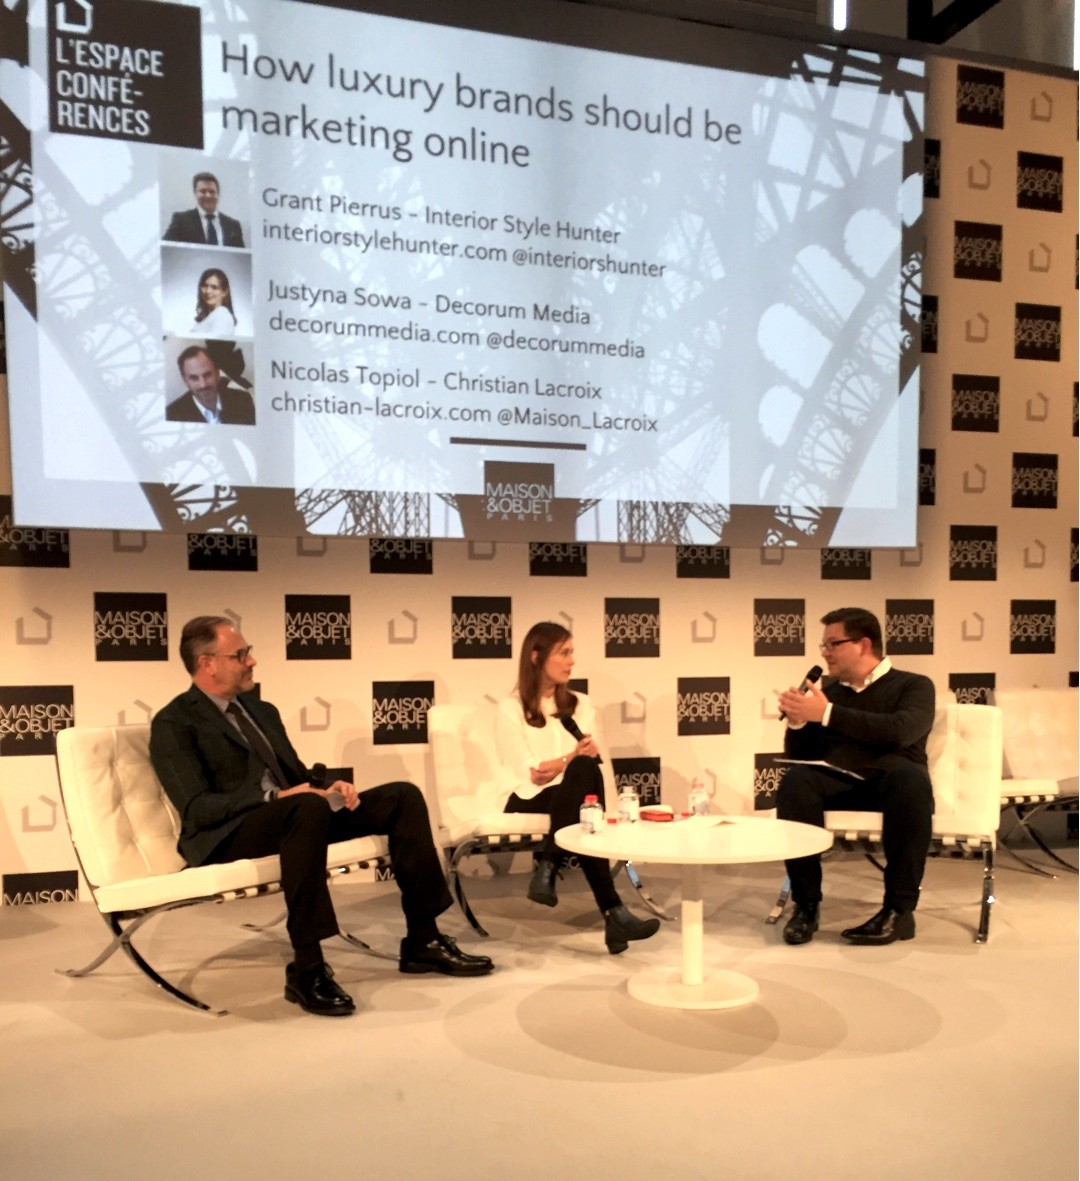 marketing luxury brands online